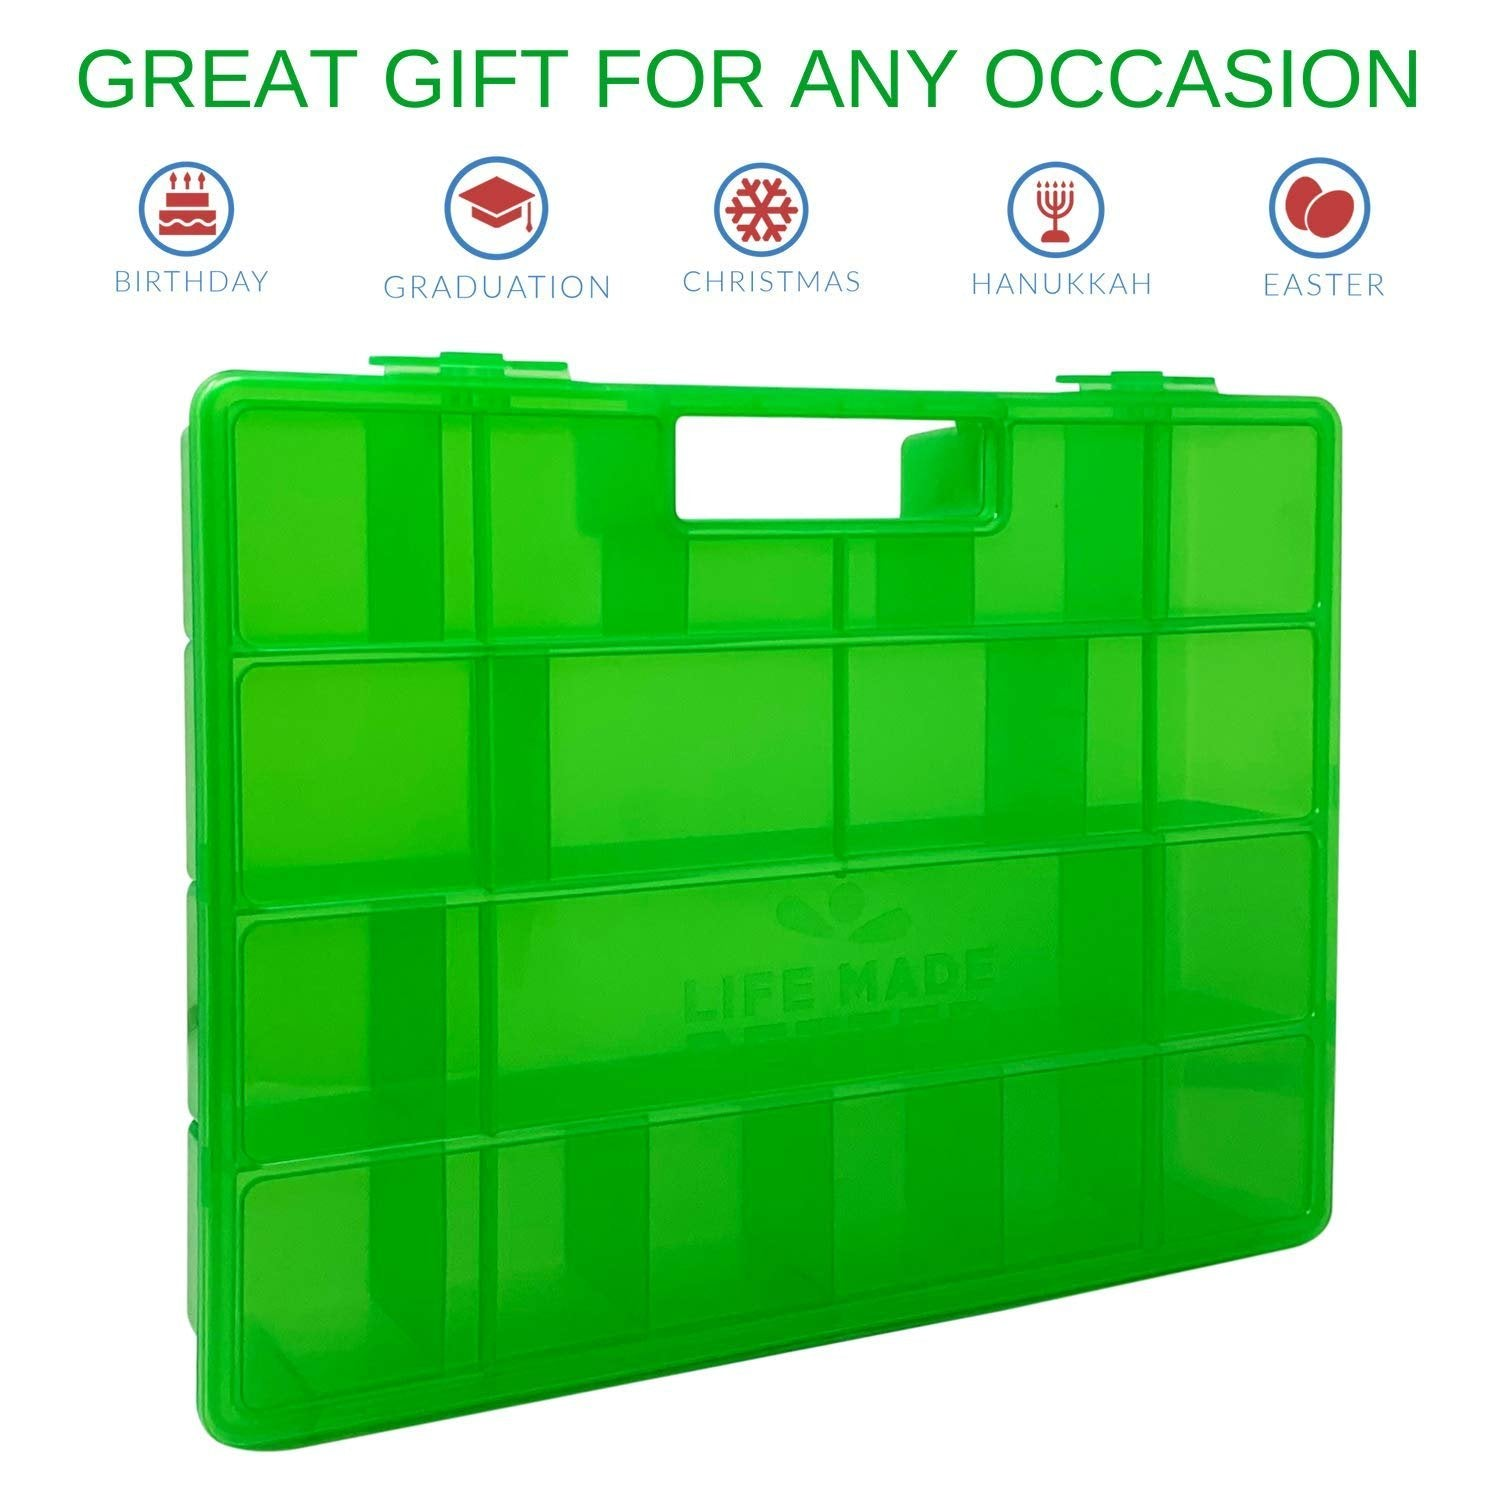 Life Made Better, Light Weight Green Toy Storage Box. Carrying Organizer Perfect for Disney Pins Storage, not Created by Disney, Accessories Made by LMB